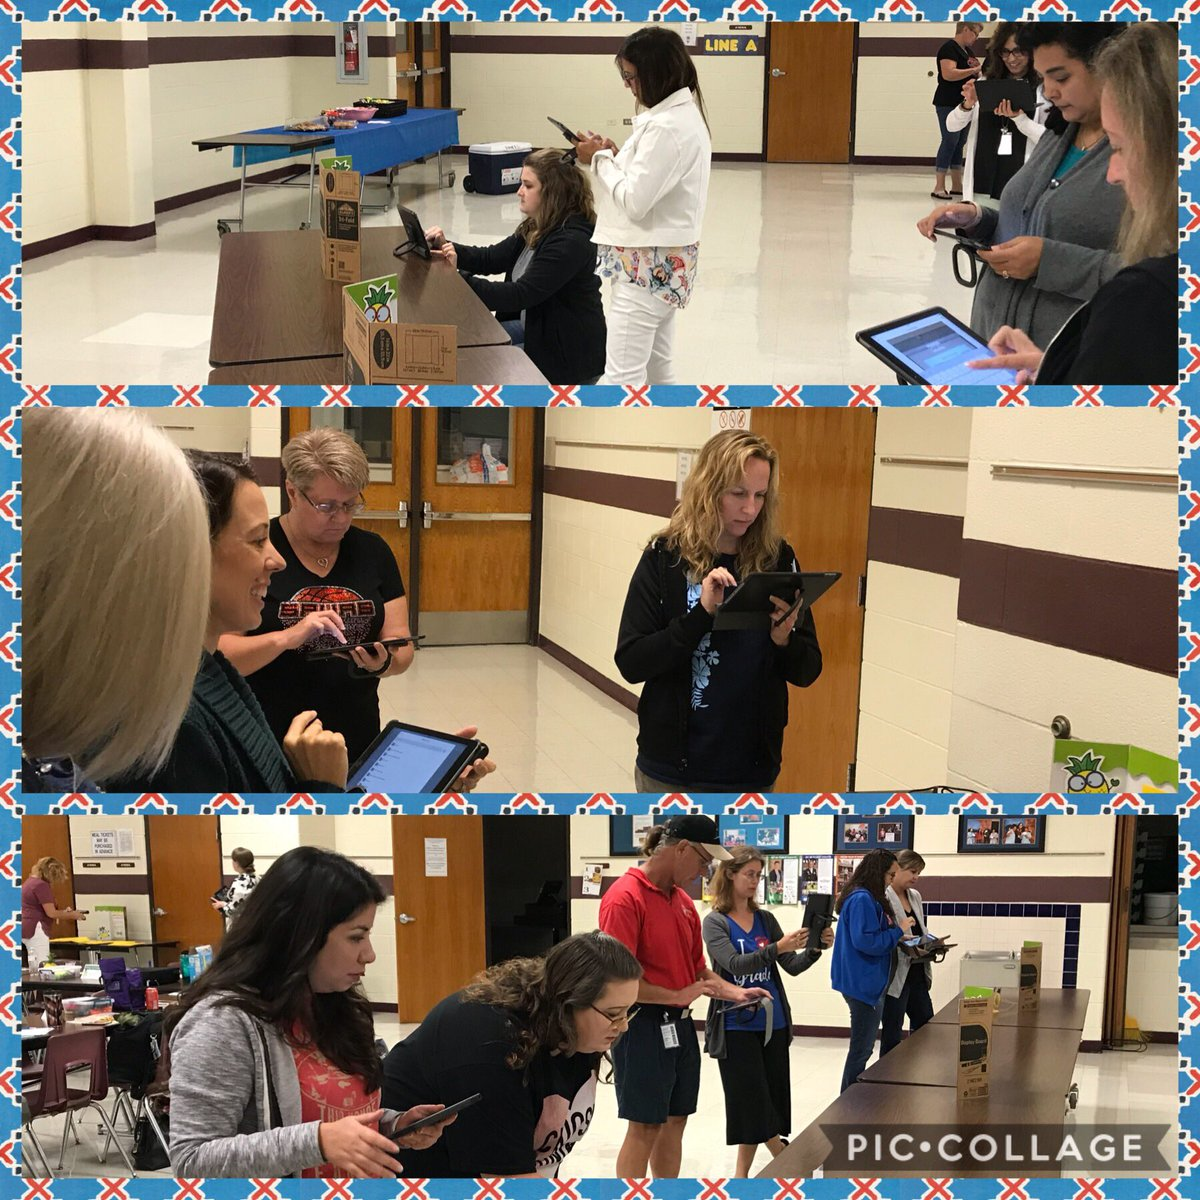 We learn by doing! Practicing adding to our @Seesaw journals @NISDElrod. Another great day of teaching and learning.  @NISDAcadTech #nisdcoach<br>http://pic.twitter.com/tDWc679AgE